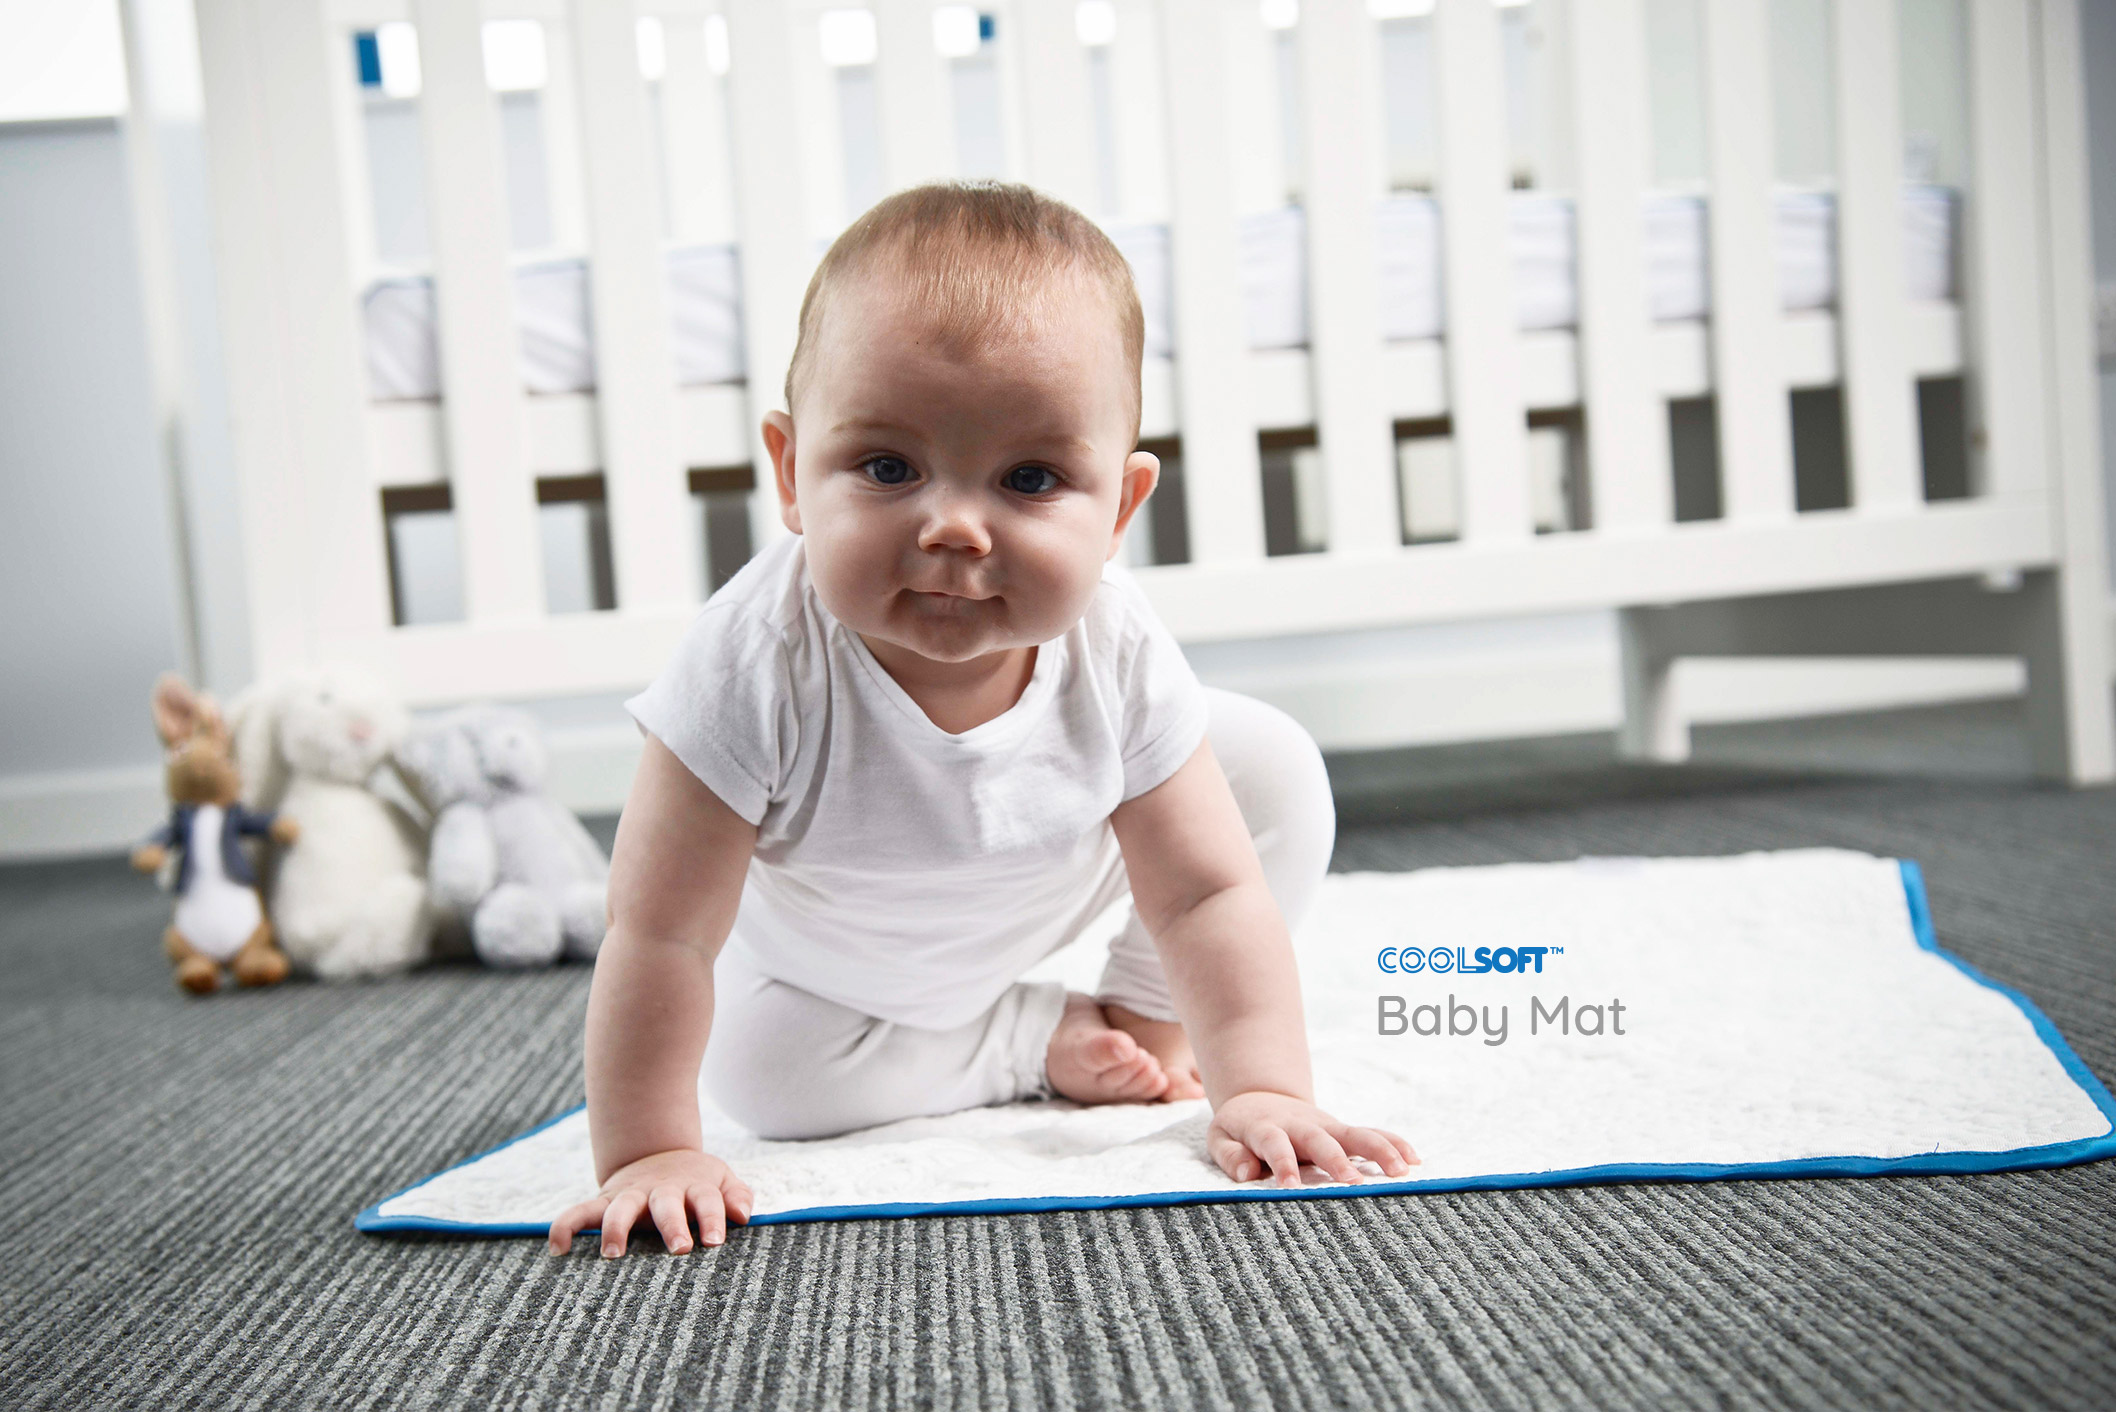 Cooling Baby Mat